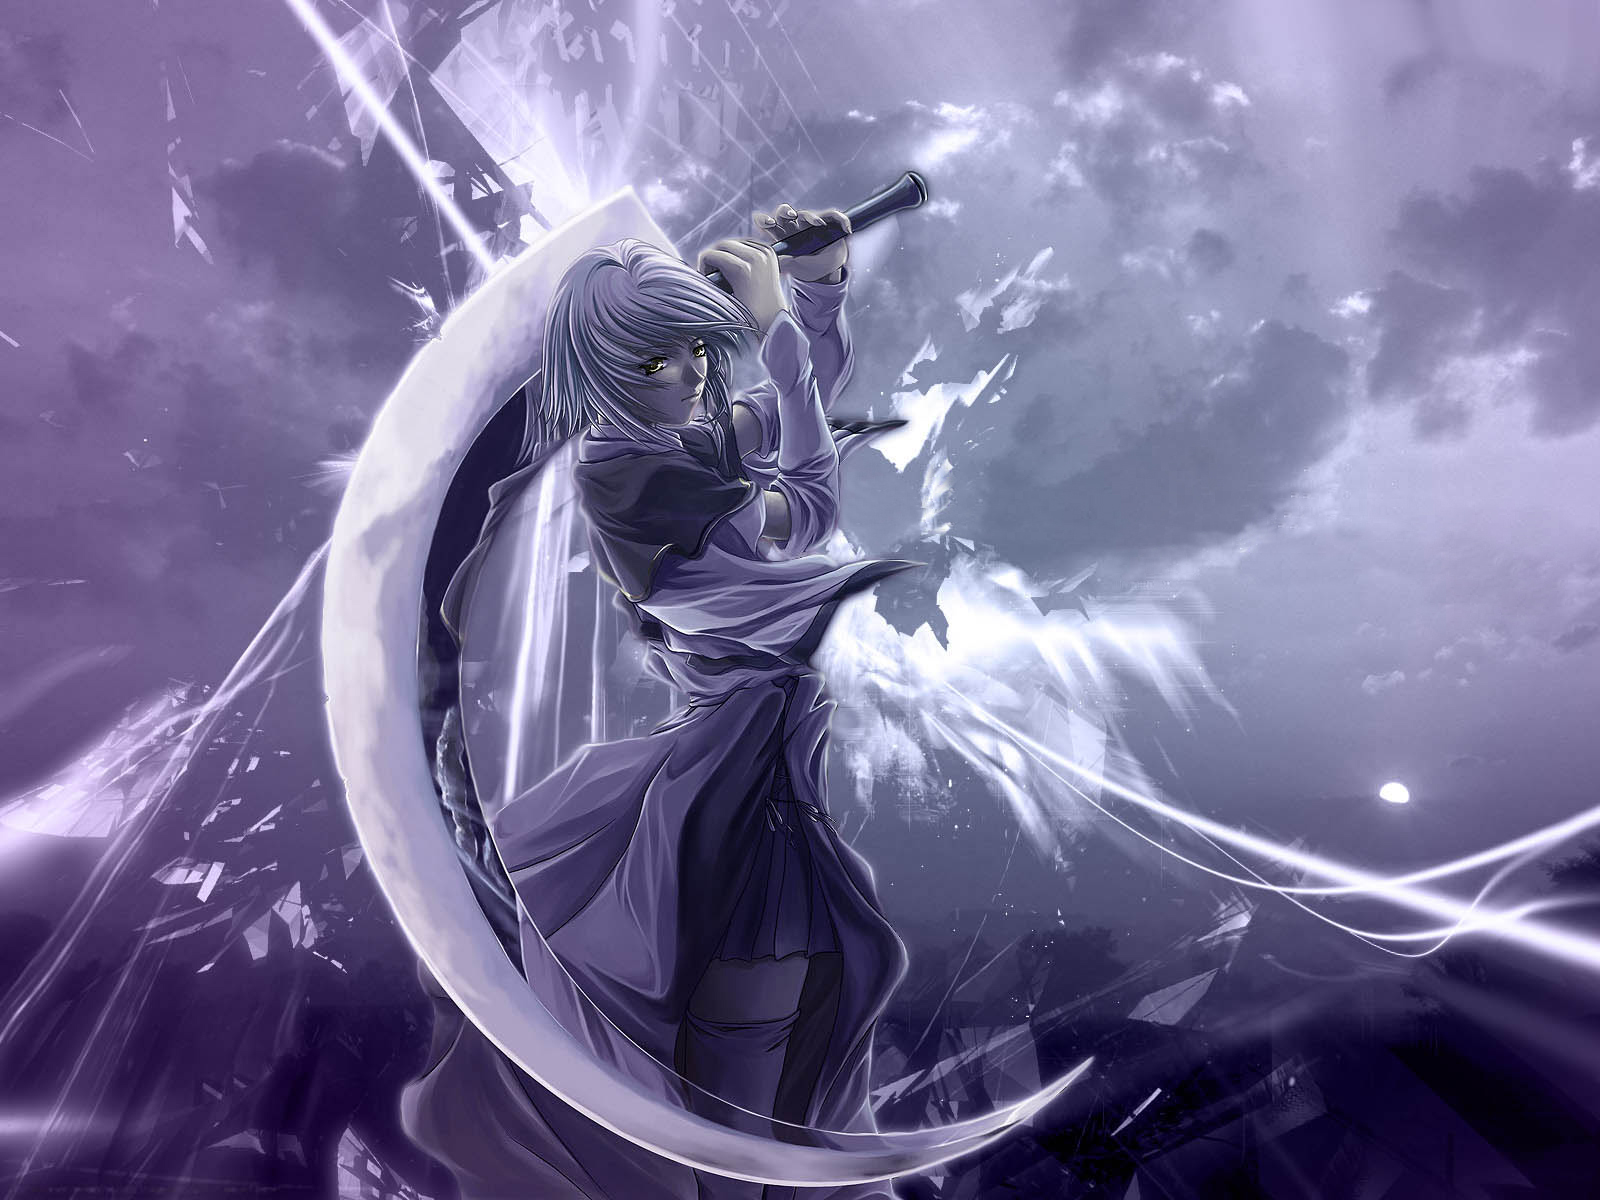 PC Wallpapers: Anime PC Wallpapers